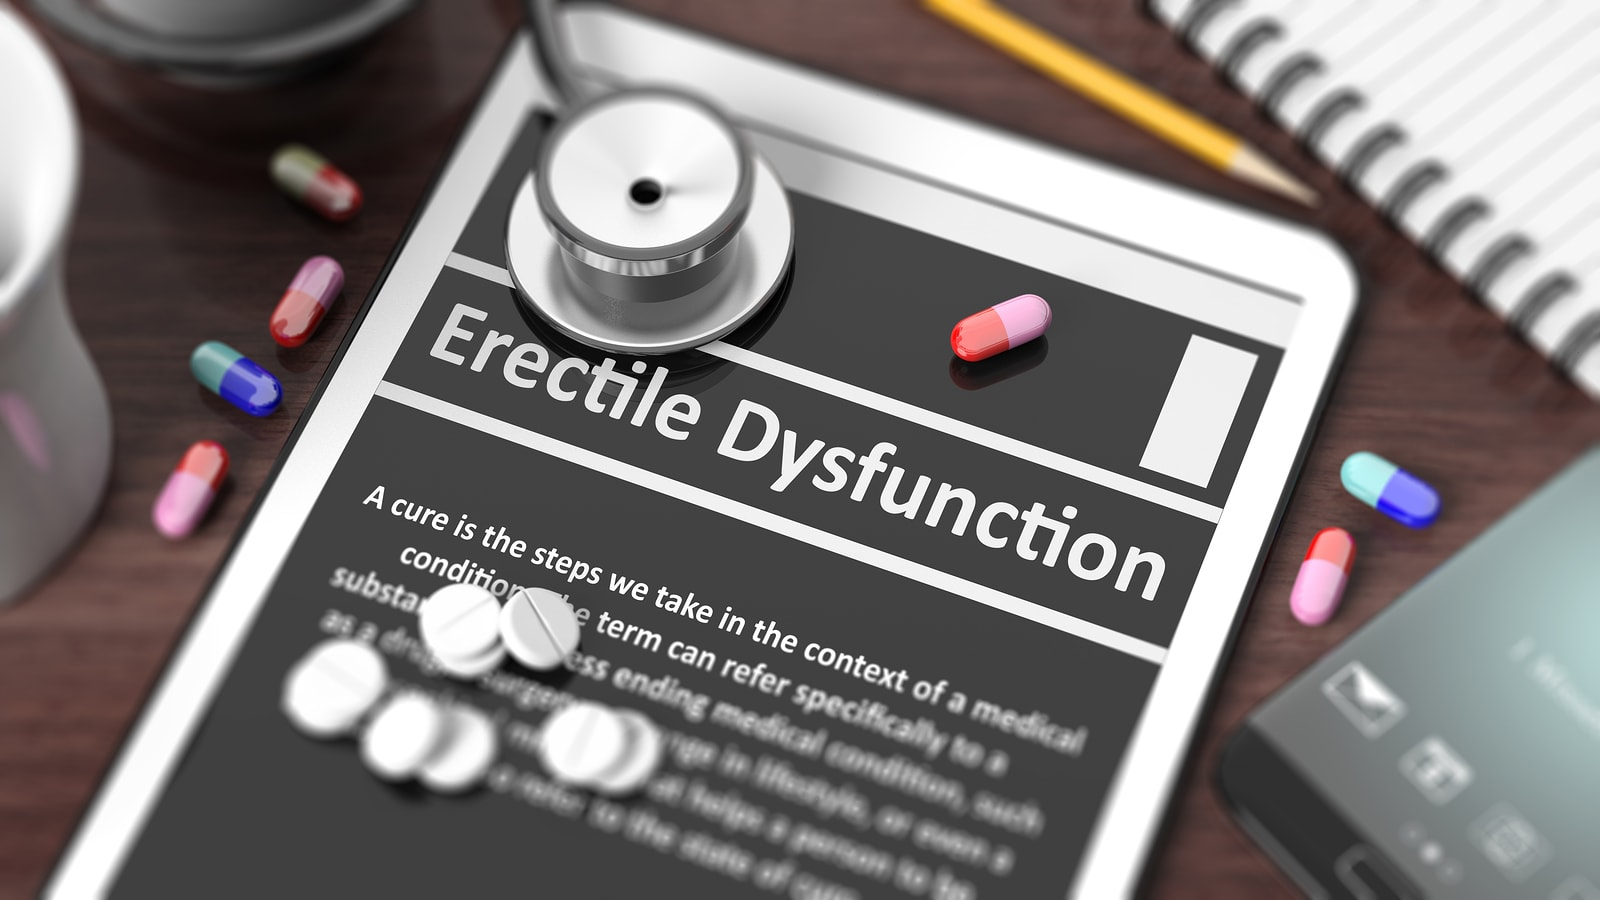 How widespread is erectile dysfunction? It is very difficult to estimate the proportion of male population throughout the world that suffers from erectile dysfunction, either occasionally or chronically. Most of the researches on the matter of erectile dysfunction were done only in recent years and were done either in the United States or Europe, but the problem of erectile dysfunction is worldwide. People have to be willing to talk whether they have the problem of erectile dysfunction. Because of the stigma associated with this issue, people may not want to open up about it. The following statistics may not be accurate, but rather gives us a frame of reference: Men under the age of 40. Erectile dysfunction (view disease info)affects 40 to 50 percent of men under age 40, at least once in their lives. Typically it is not chronic, partly because of the physical health of people under 40. It is estimated only 2 to 5 percent of men in this group have erectile dysfunction chronically. Men over the age of 40. In this group about 70 percent of men have experienced erectile dysfunction at least once in their lives. Around 15 to 20 percent of men in this group have this problem chronically. Primary erectile dysfunction and secondary erectile dysfunction Before getting to the list of the most common emotional factors, we need to consider two phases of erectile dysfunction. Primary Erectile dysfunction can be caused by a variety of factors: medication, physical issues, or psychological issues. Secondary causes of erectile dysfunction are psychological. These result in anxiety. Anxiety can be independent of what was the primary reason of erectile dysfunction. Anxiety when applied to erectile dysfunction means anticipation that once erectile dysfunction episode happened, it is going to repeat. Anxiety like this is typical for any other activity as well, as it produces exactly the result a man fears. 9 common psychological causes of erectile dysfunction include: General stress le